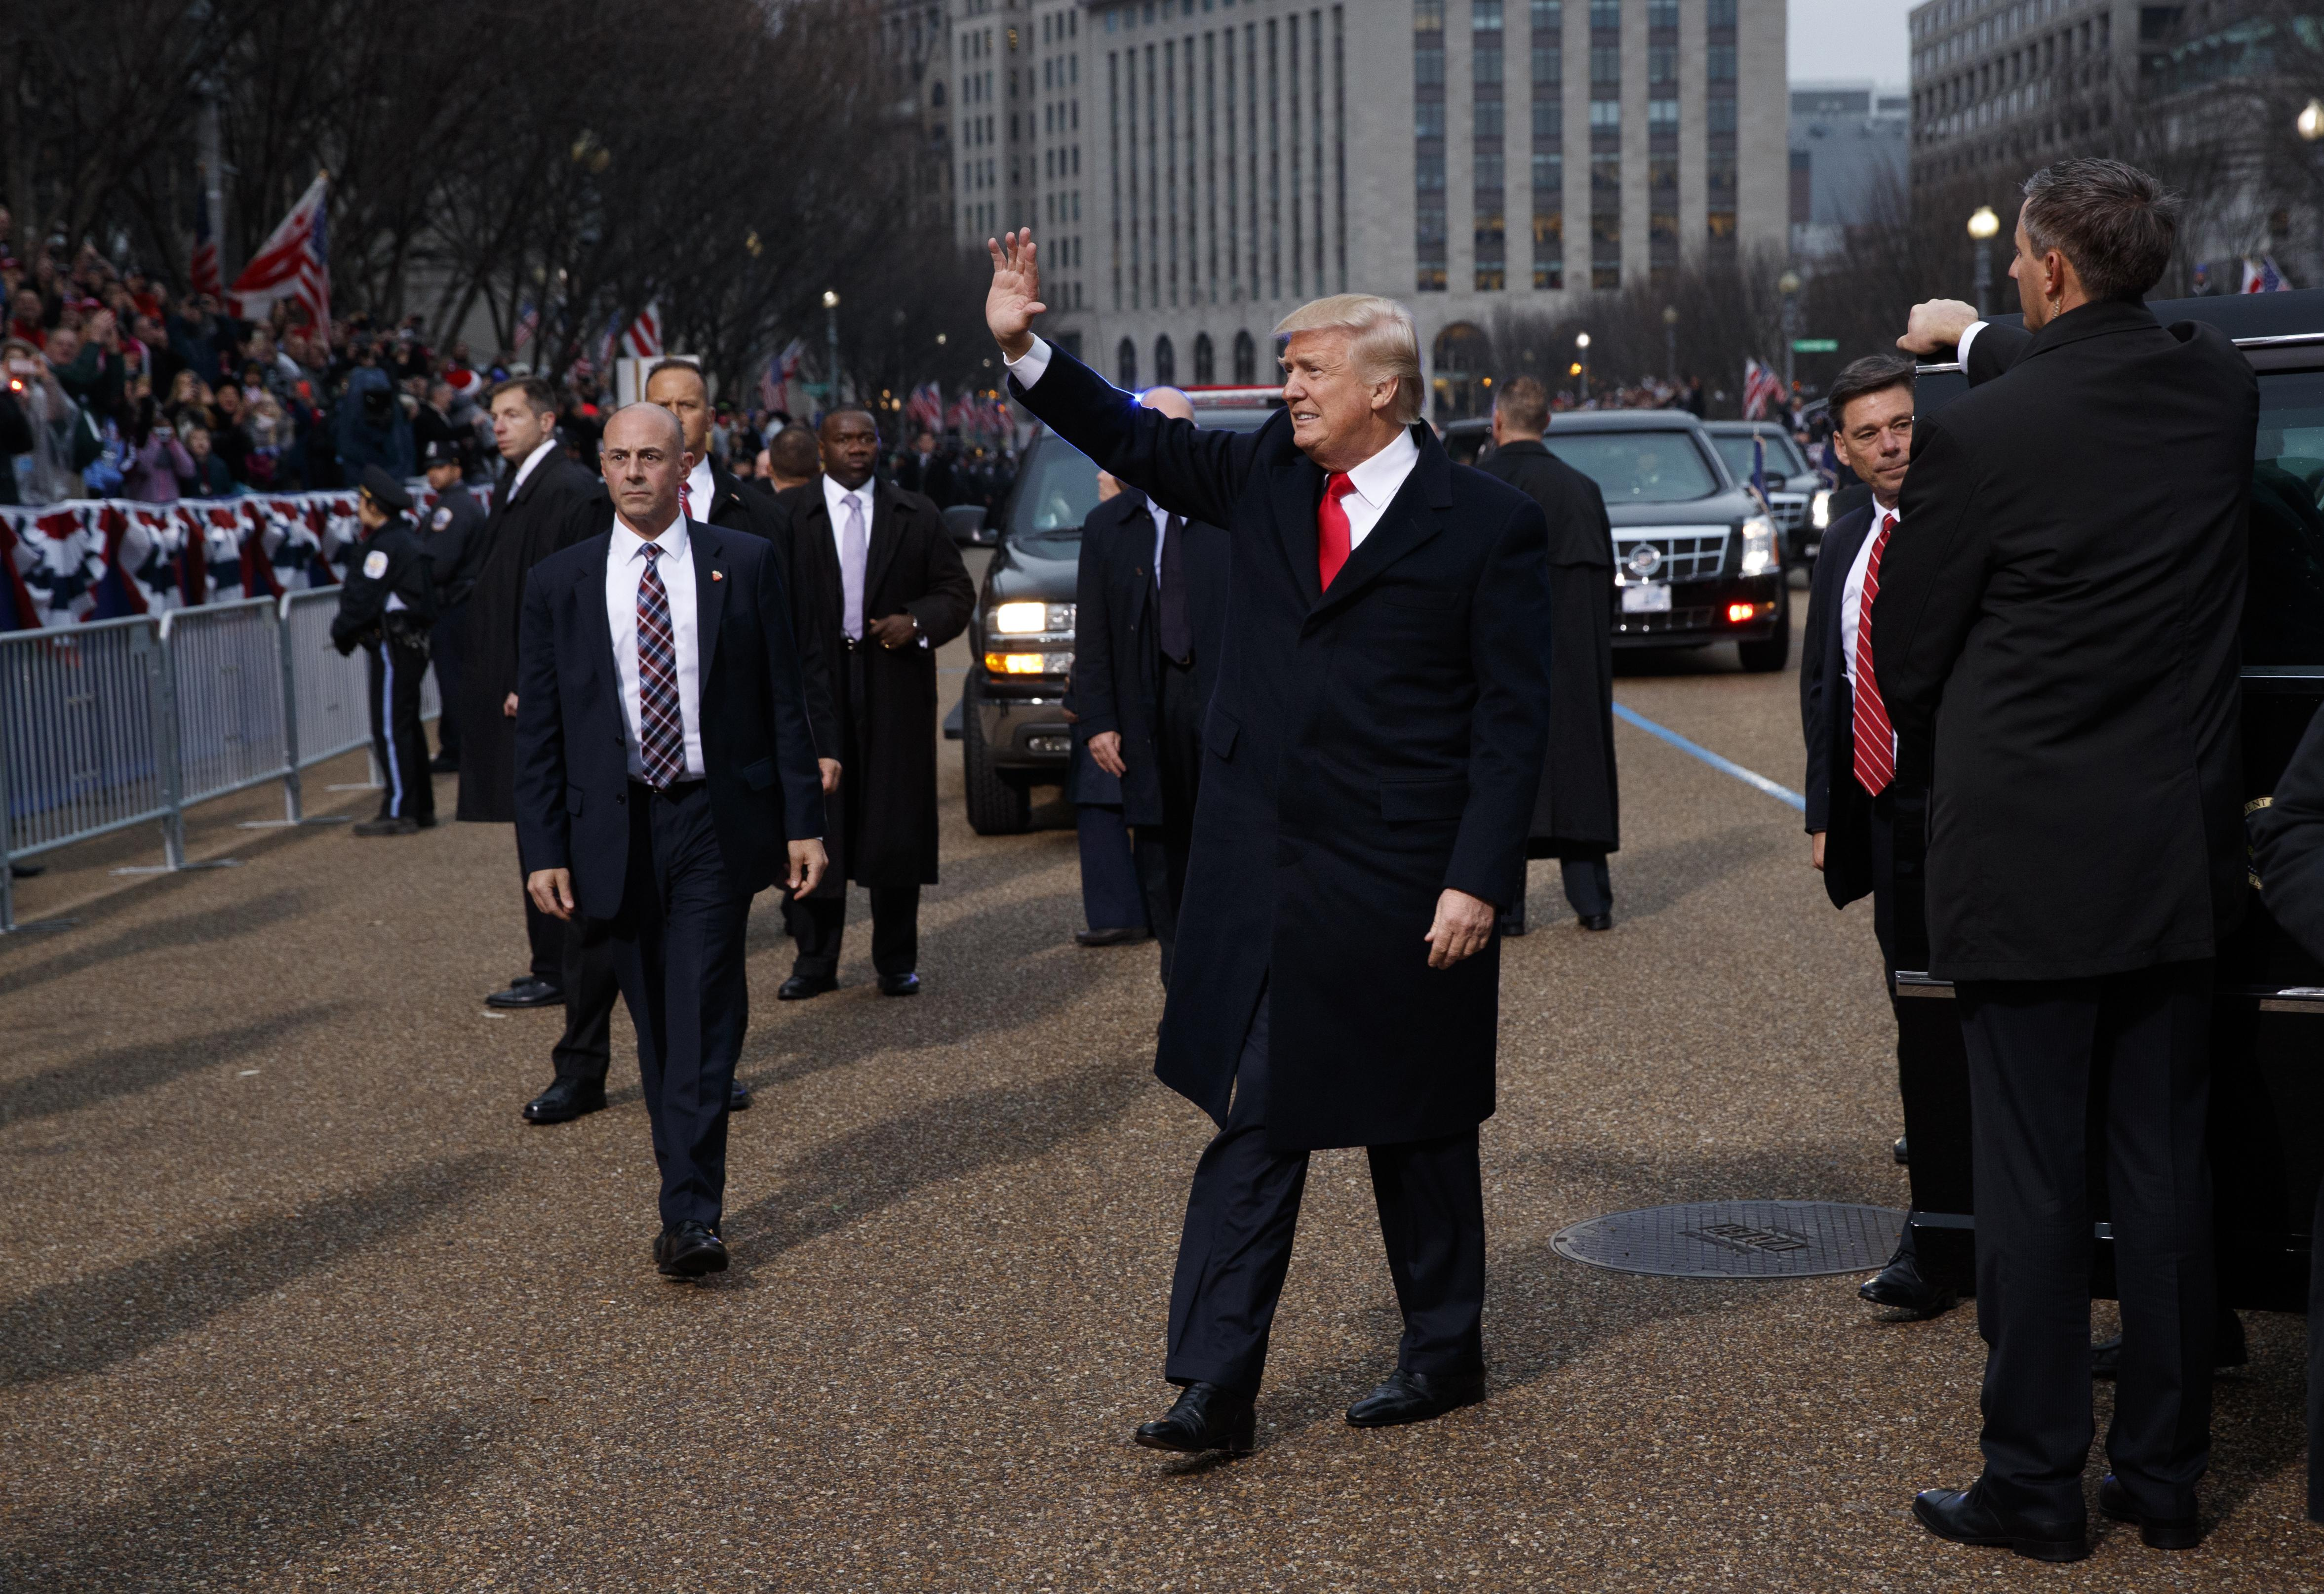 Trump administration owes D.C. government $7 million for inauguration: Washington Post